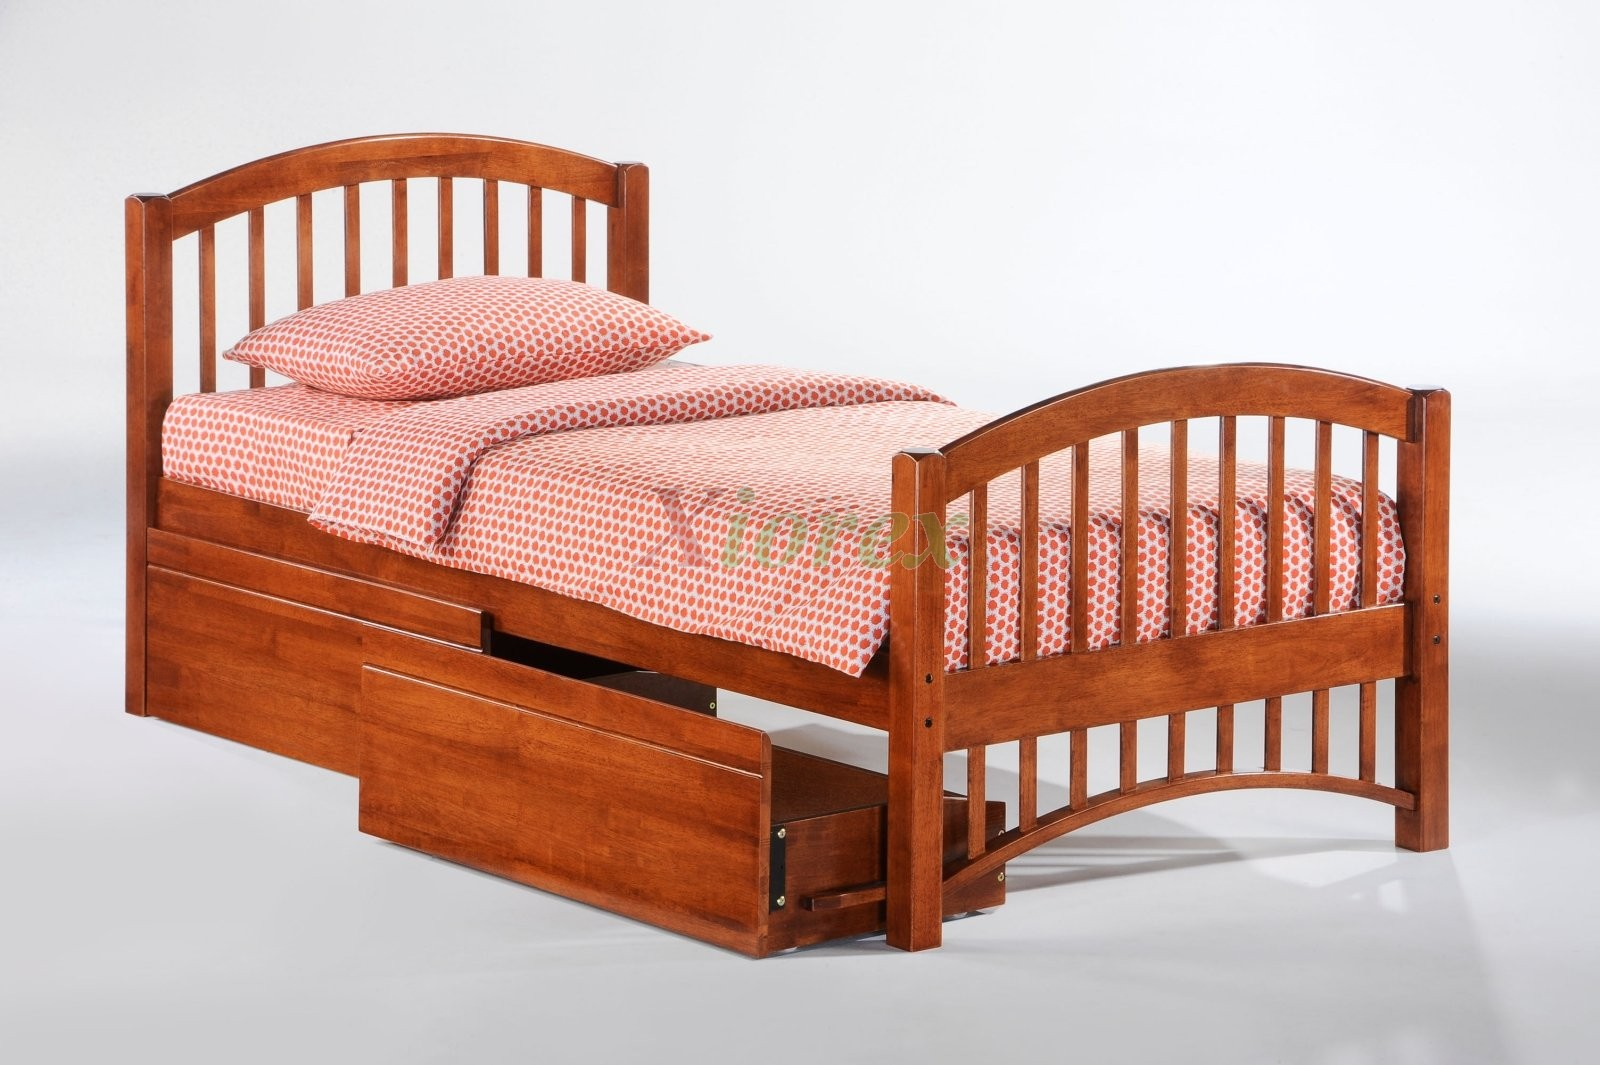 Bed furniture with drawers - Bedroom Furniture N D Molasses Twin Bed In Cherry W Drawers Xiorex